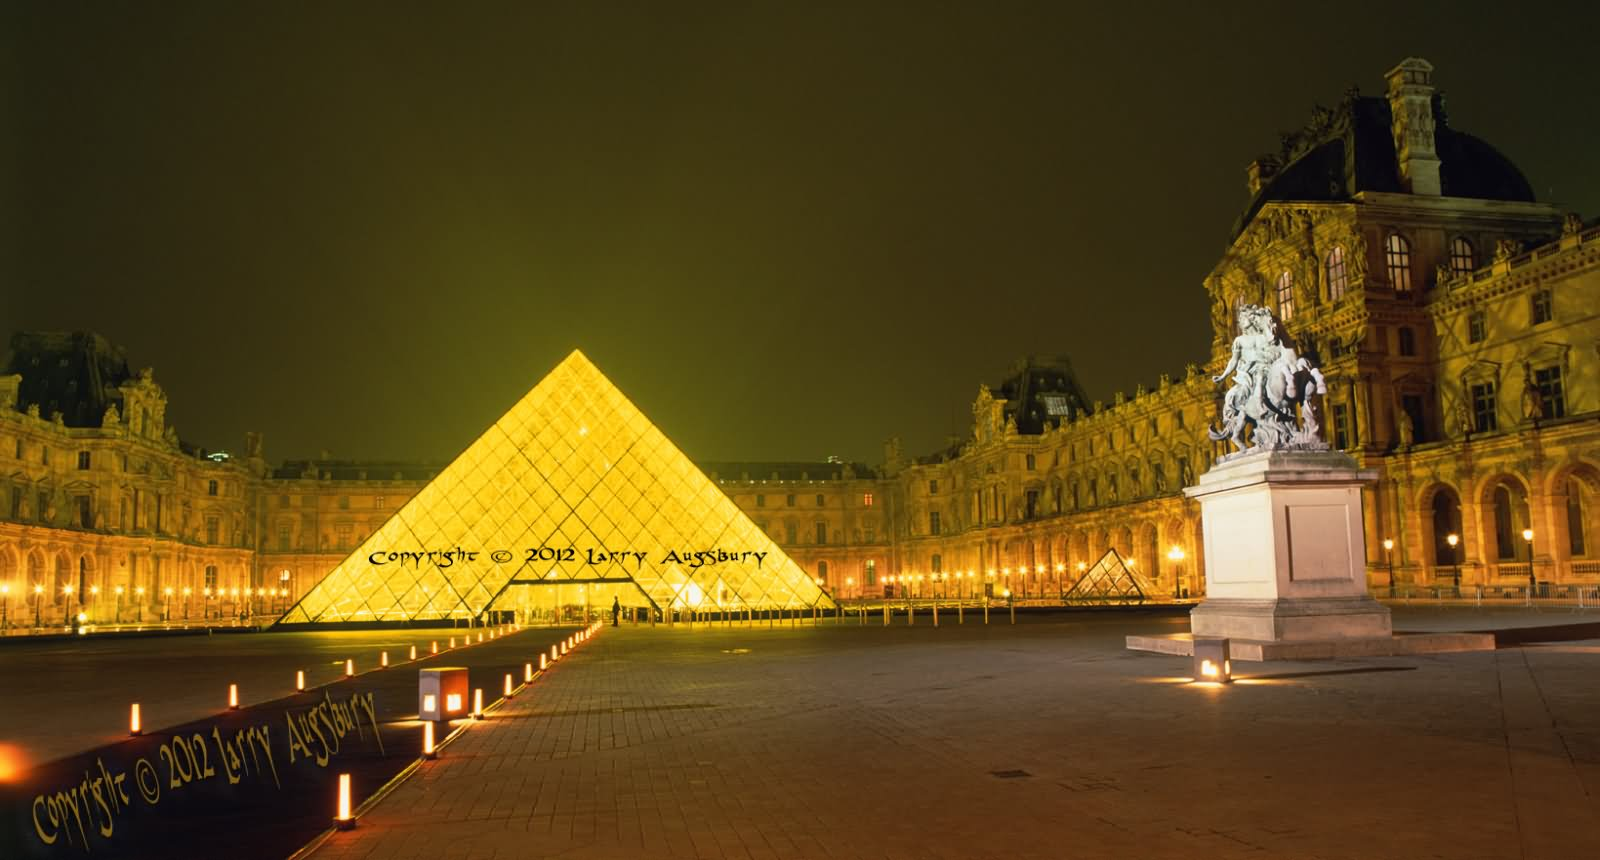 Lighting Decoration At Glass Pyramid And The Louvre Museum